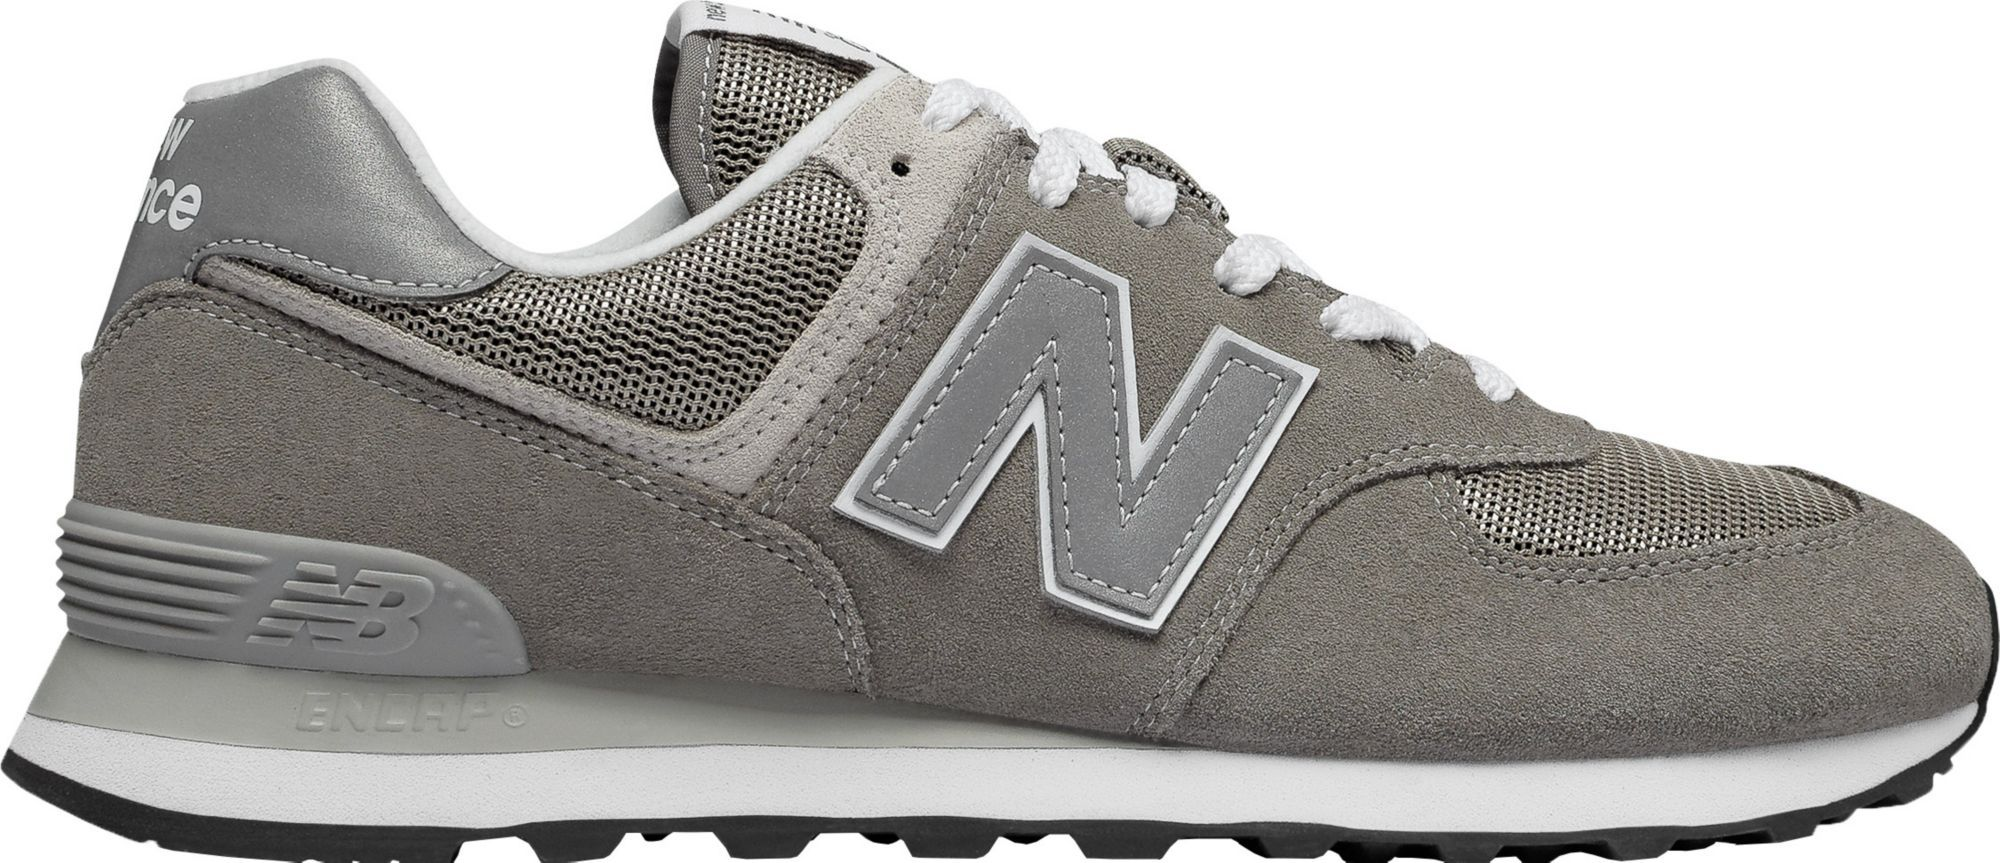 New Balance Men's 574 Shoes | New balance grey shoes, New ...